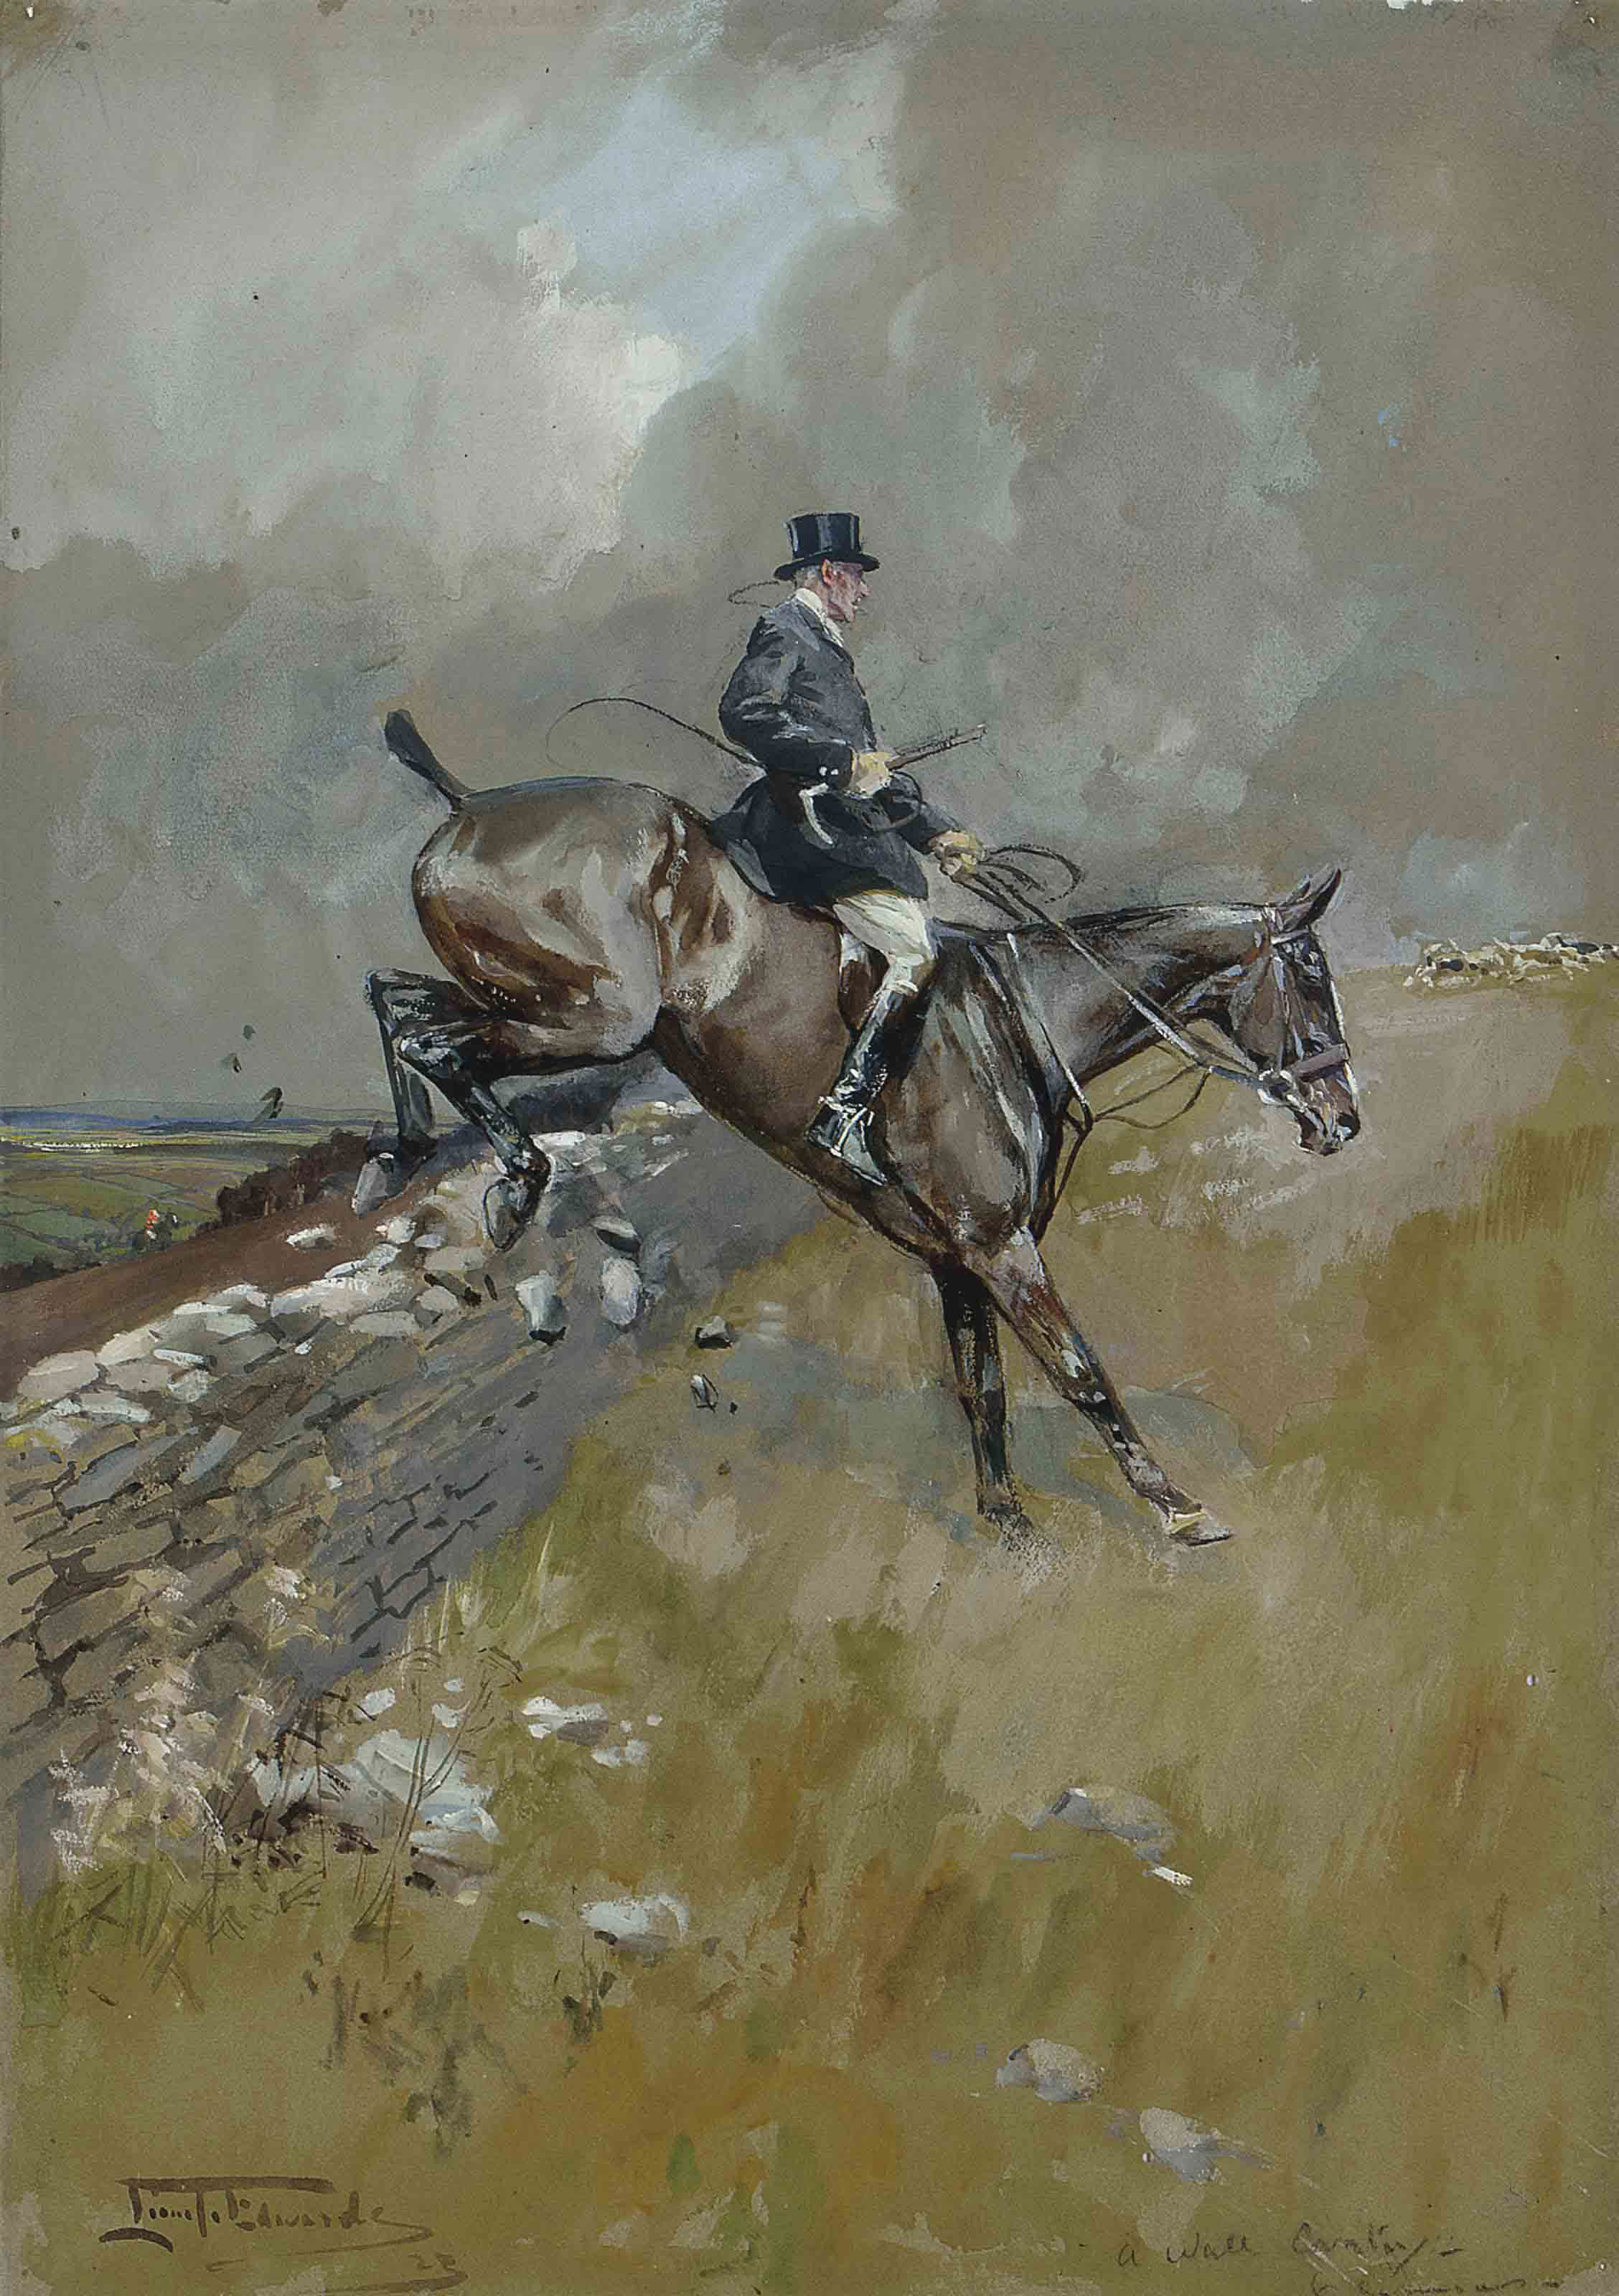 A wall country  O! Give me the man to whom naught comes amiss One horse or another that country or this.                       - R.E. Egerton Warburton Quaestium Meritis